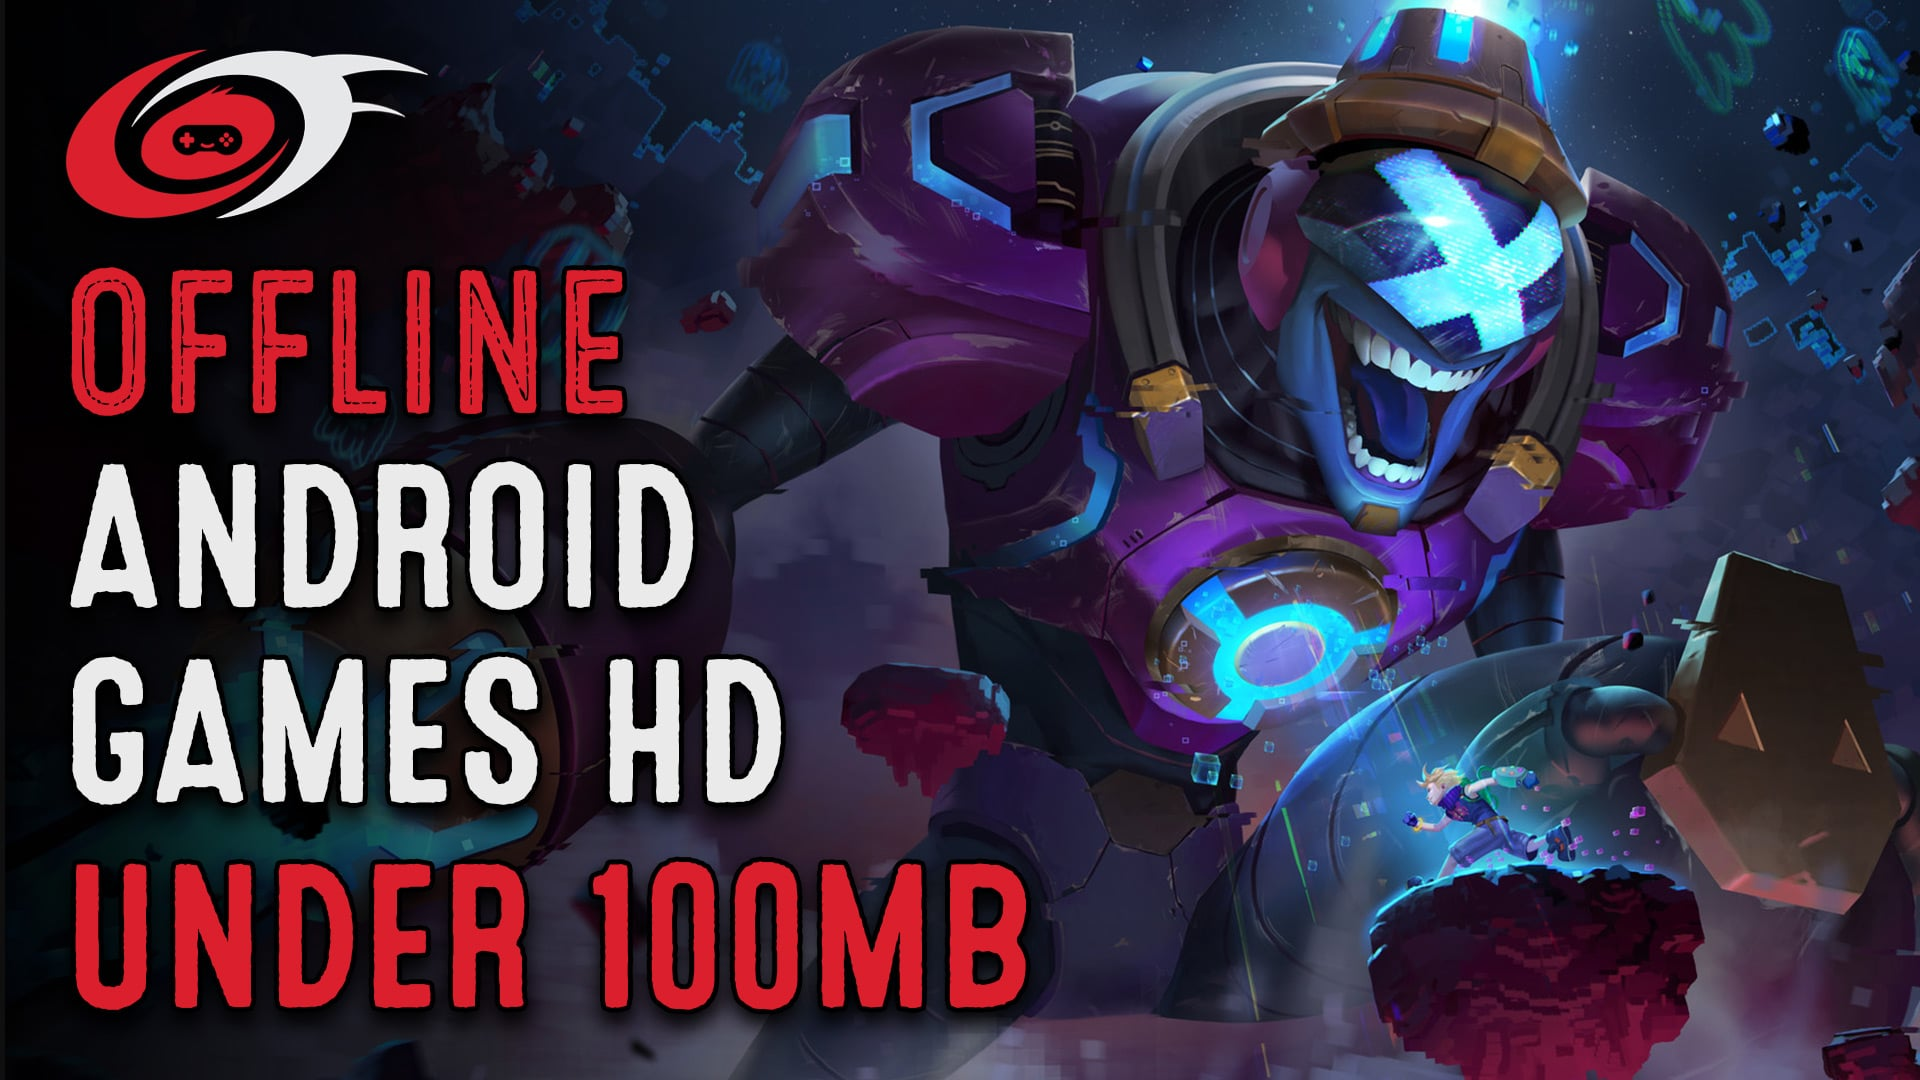 Top 10 Best Offline Hd Android Games Under 100mb 2018 Deface Games